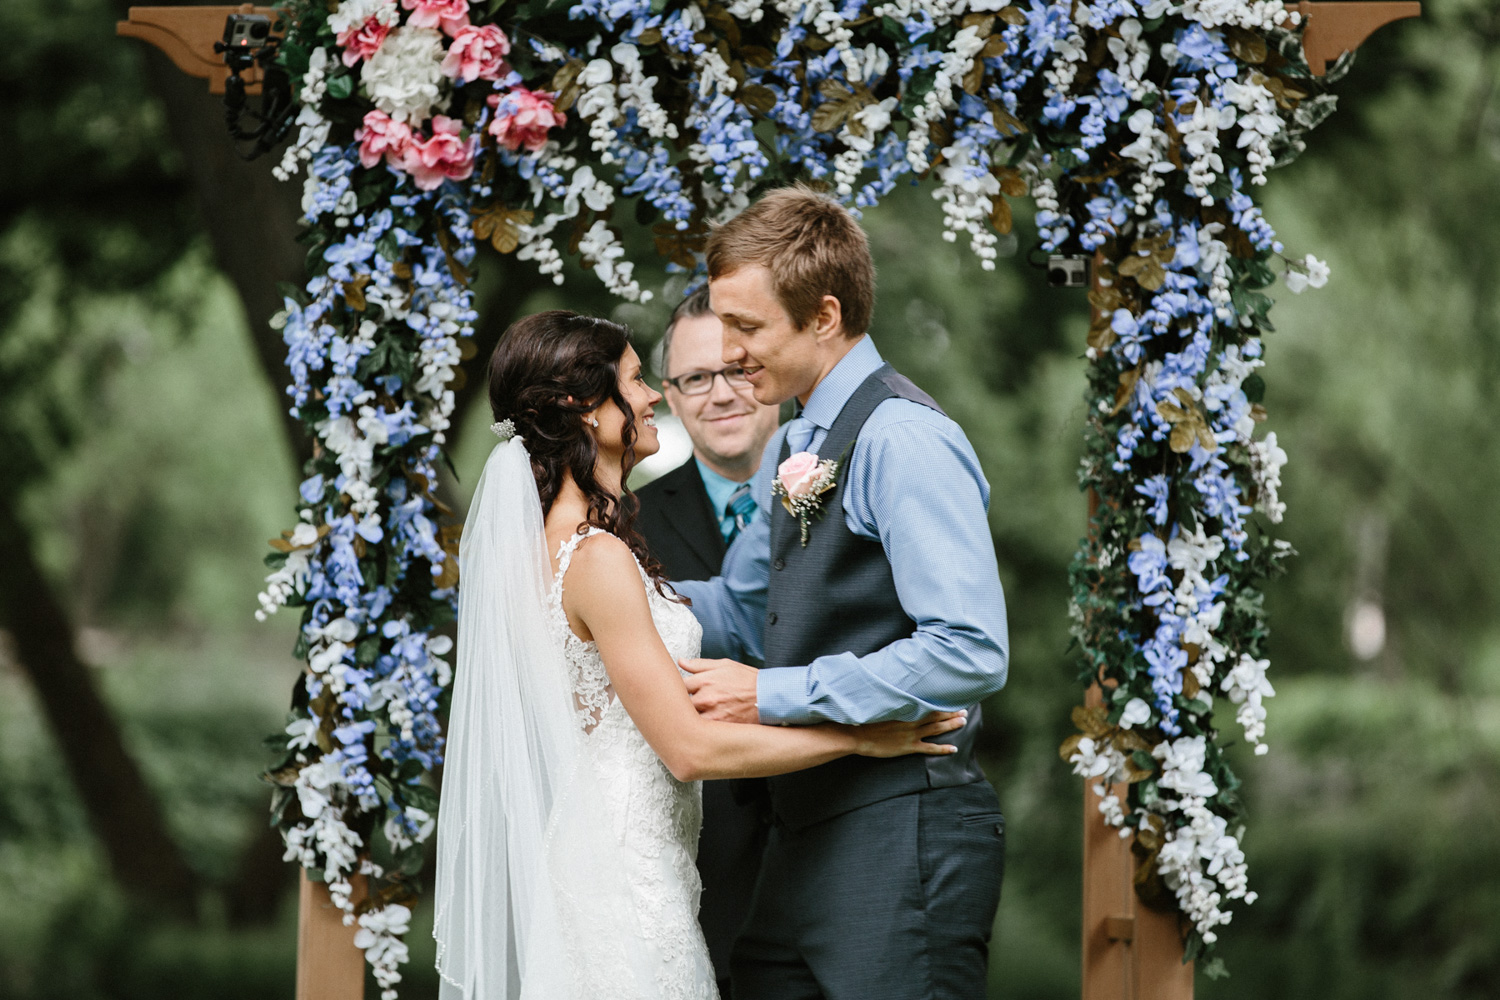 Outdoor_Wedding_SiouxFalls_MaryJoWegnerArboretum_Photographer_Calli&Jon_089.jpg